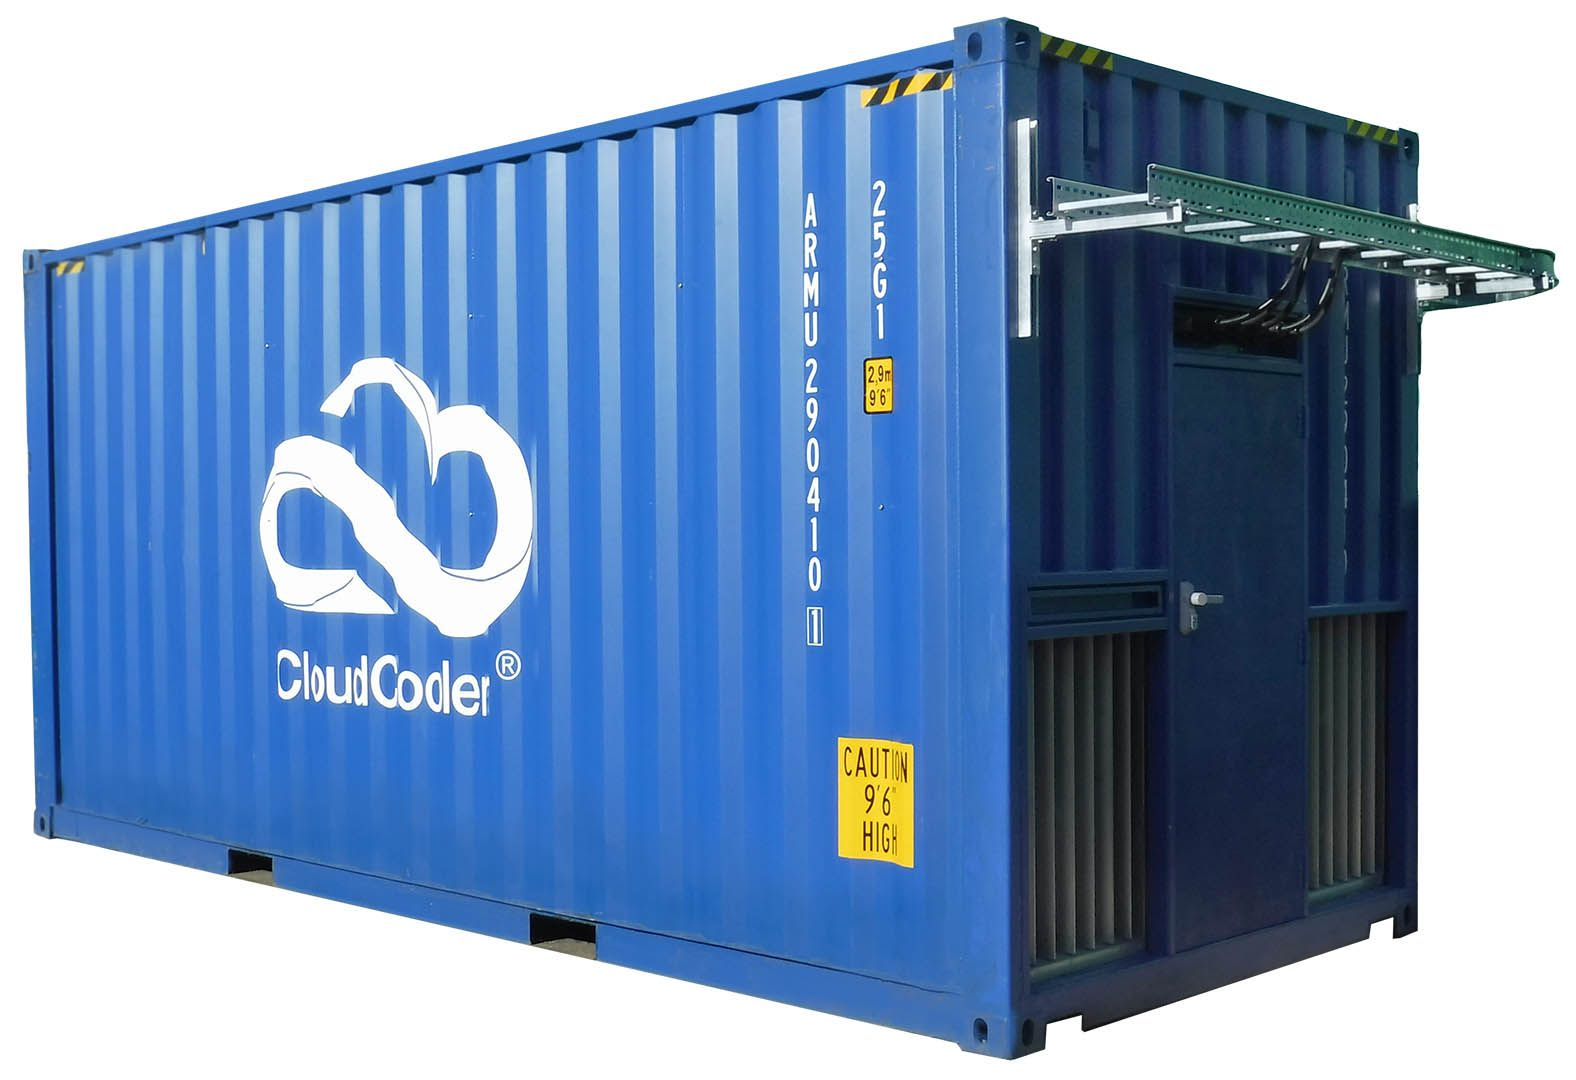 HPC Data Container CloudCooler for Edge computing and HPC portable data centre micro data centre shipping container